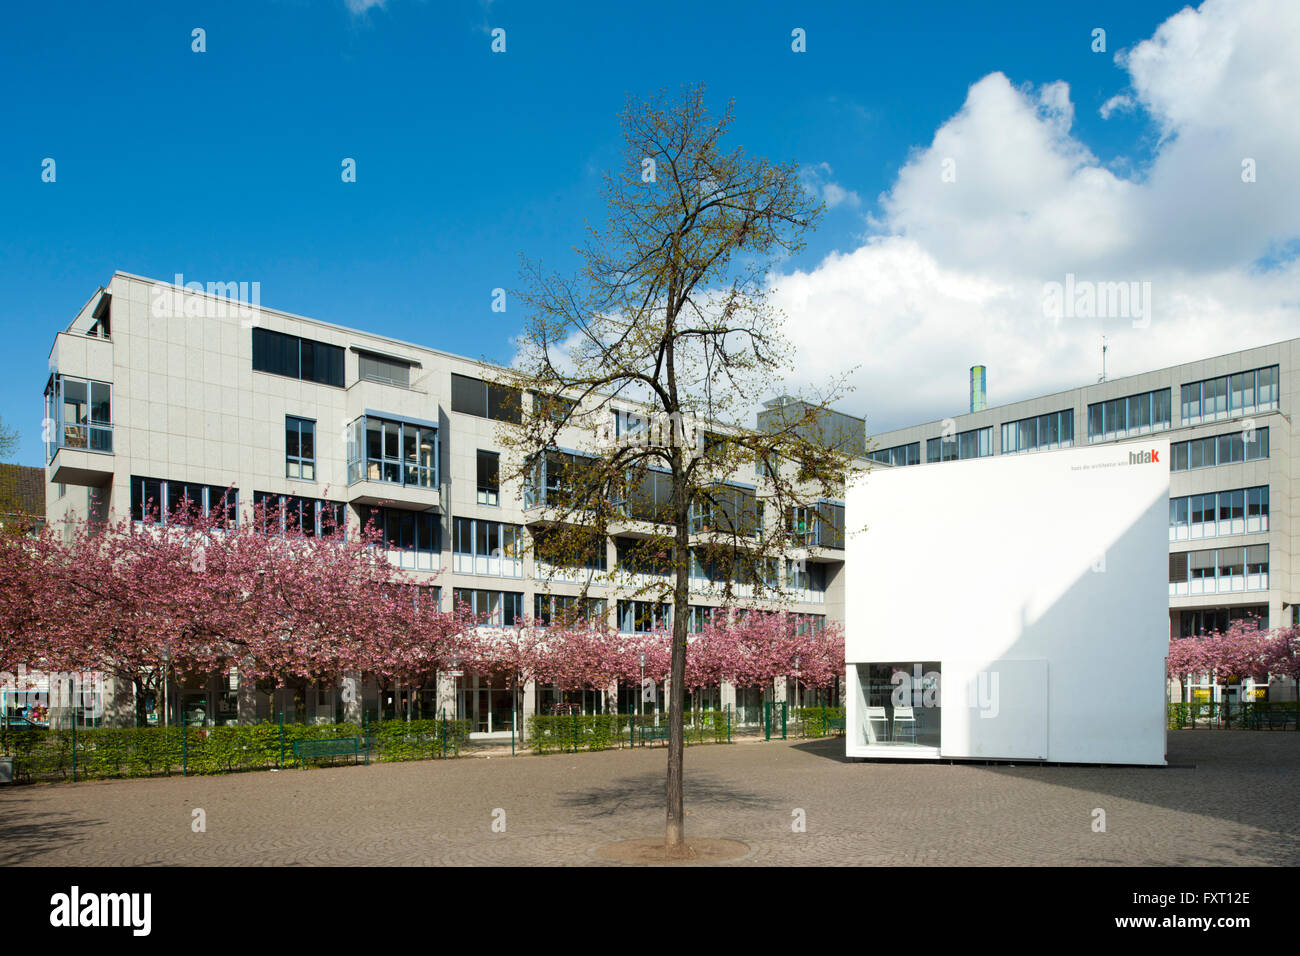 Haubrich stock photos haubrich stock images alamy - Haus der architektur ...